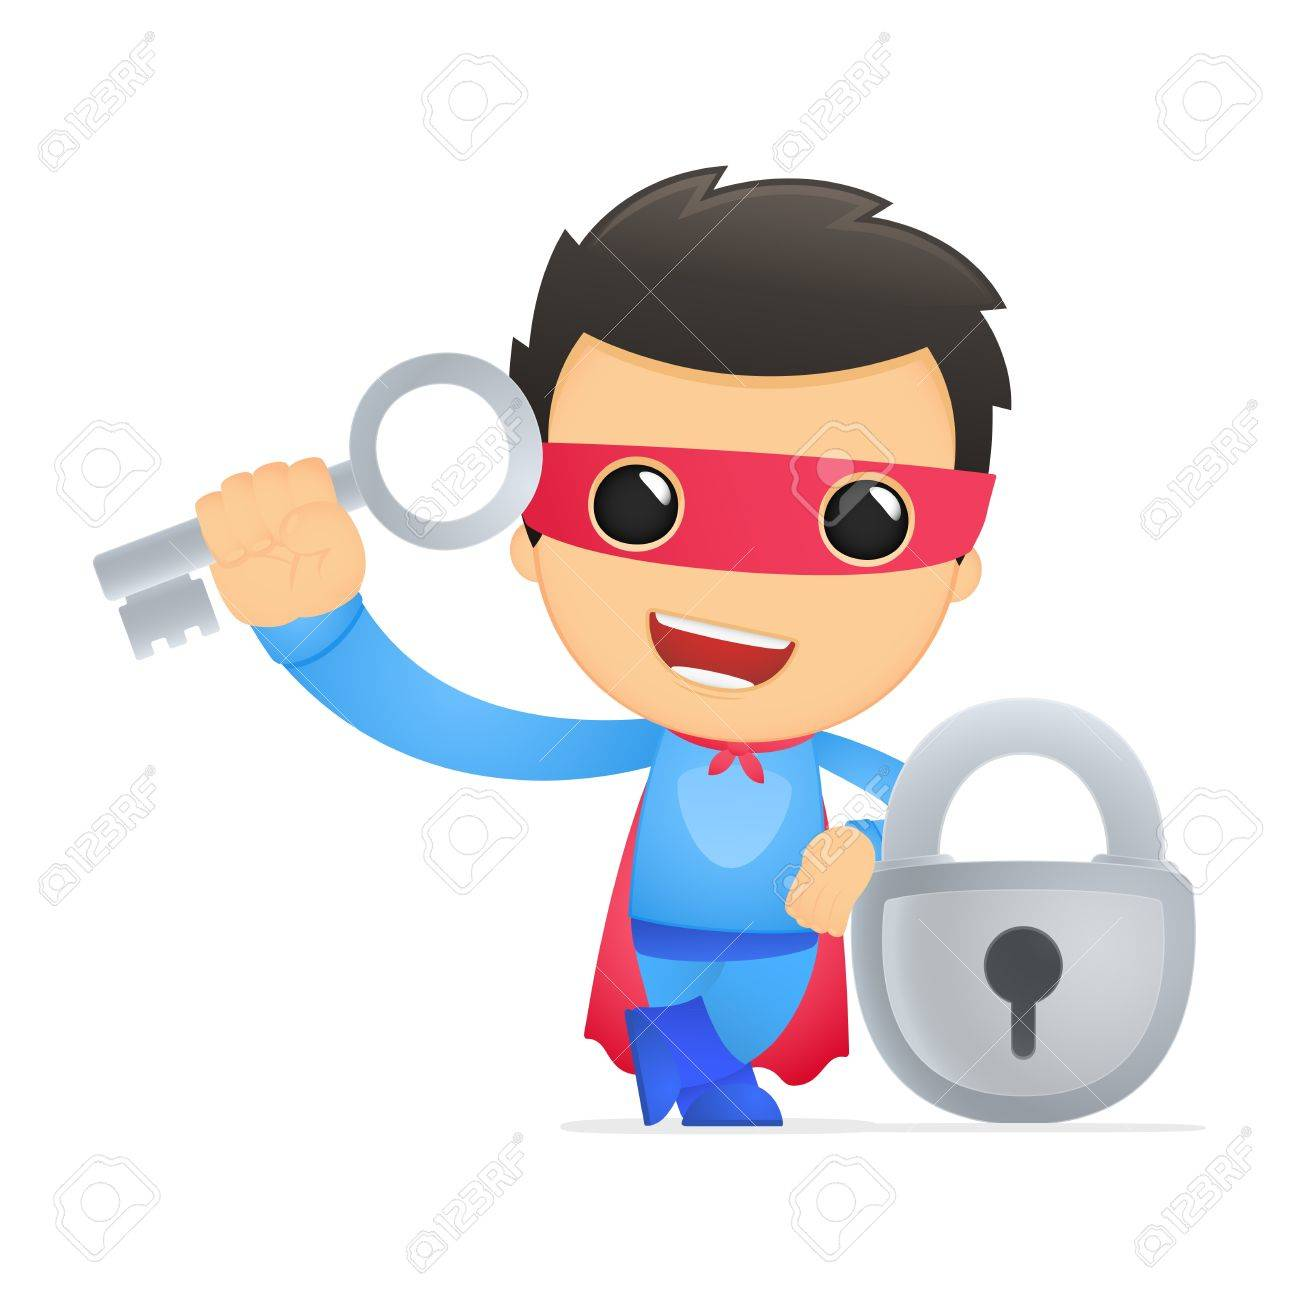 funny cartoon superhero Stock Vector - 13890390